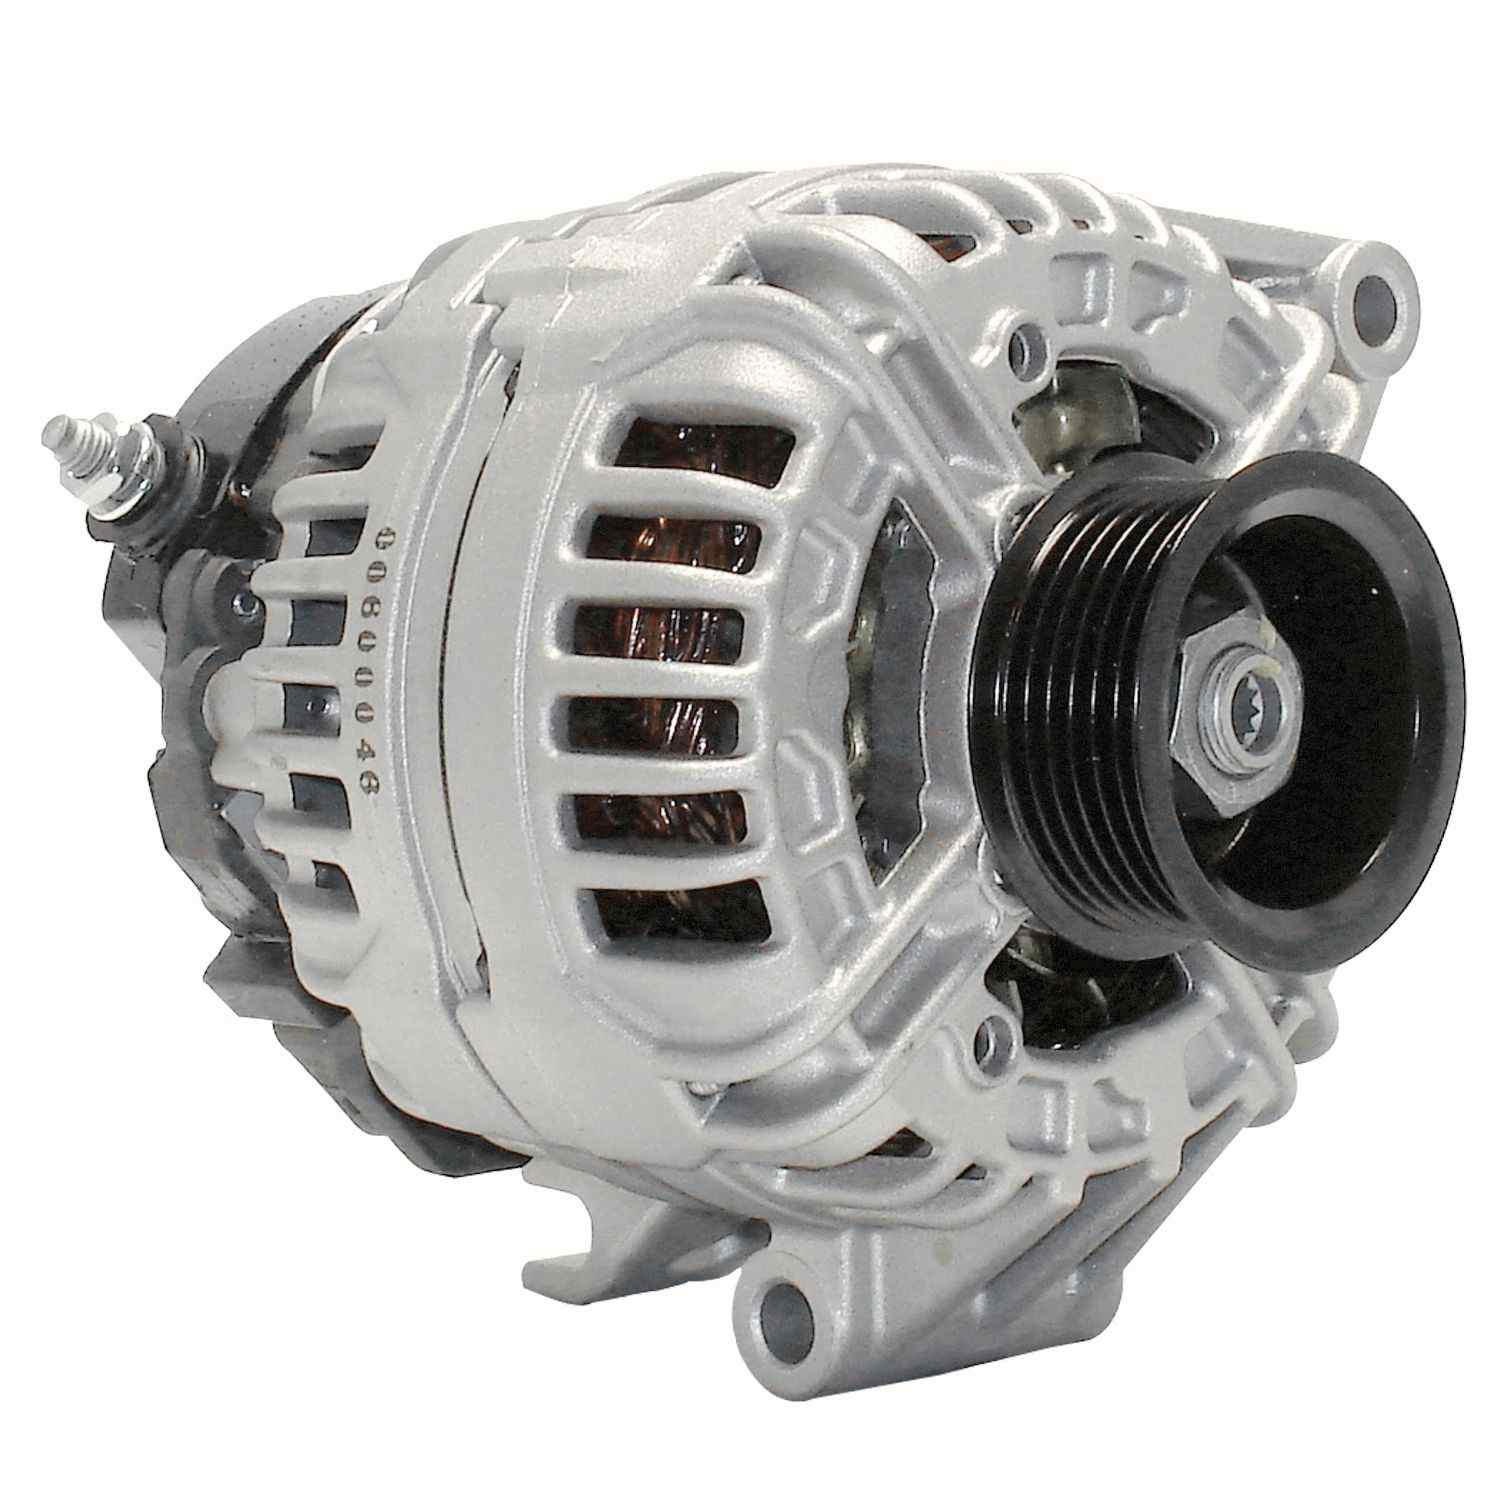 ACDELCO GOLD/PROFESSIONAL - Reman Alternator - DCC 334-1509A